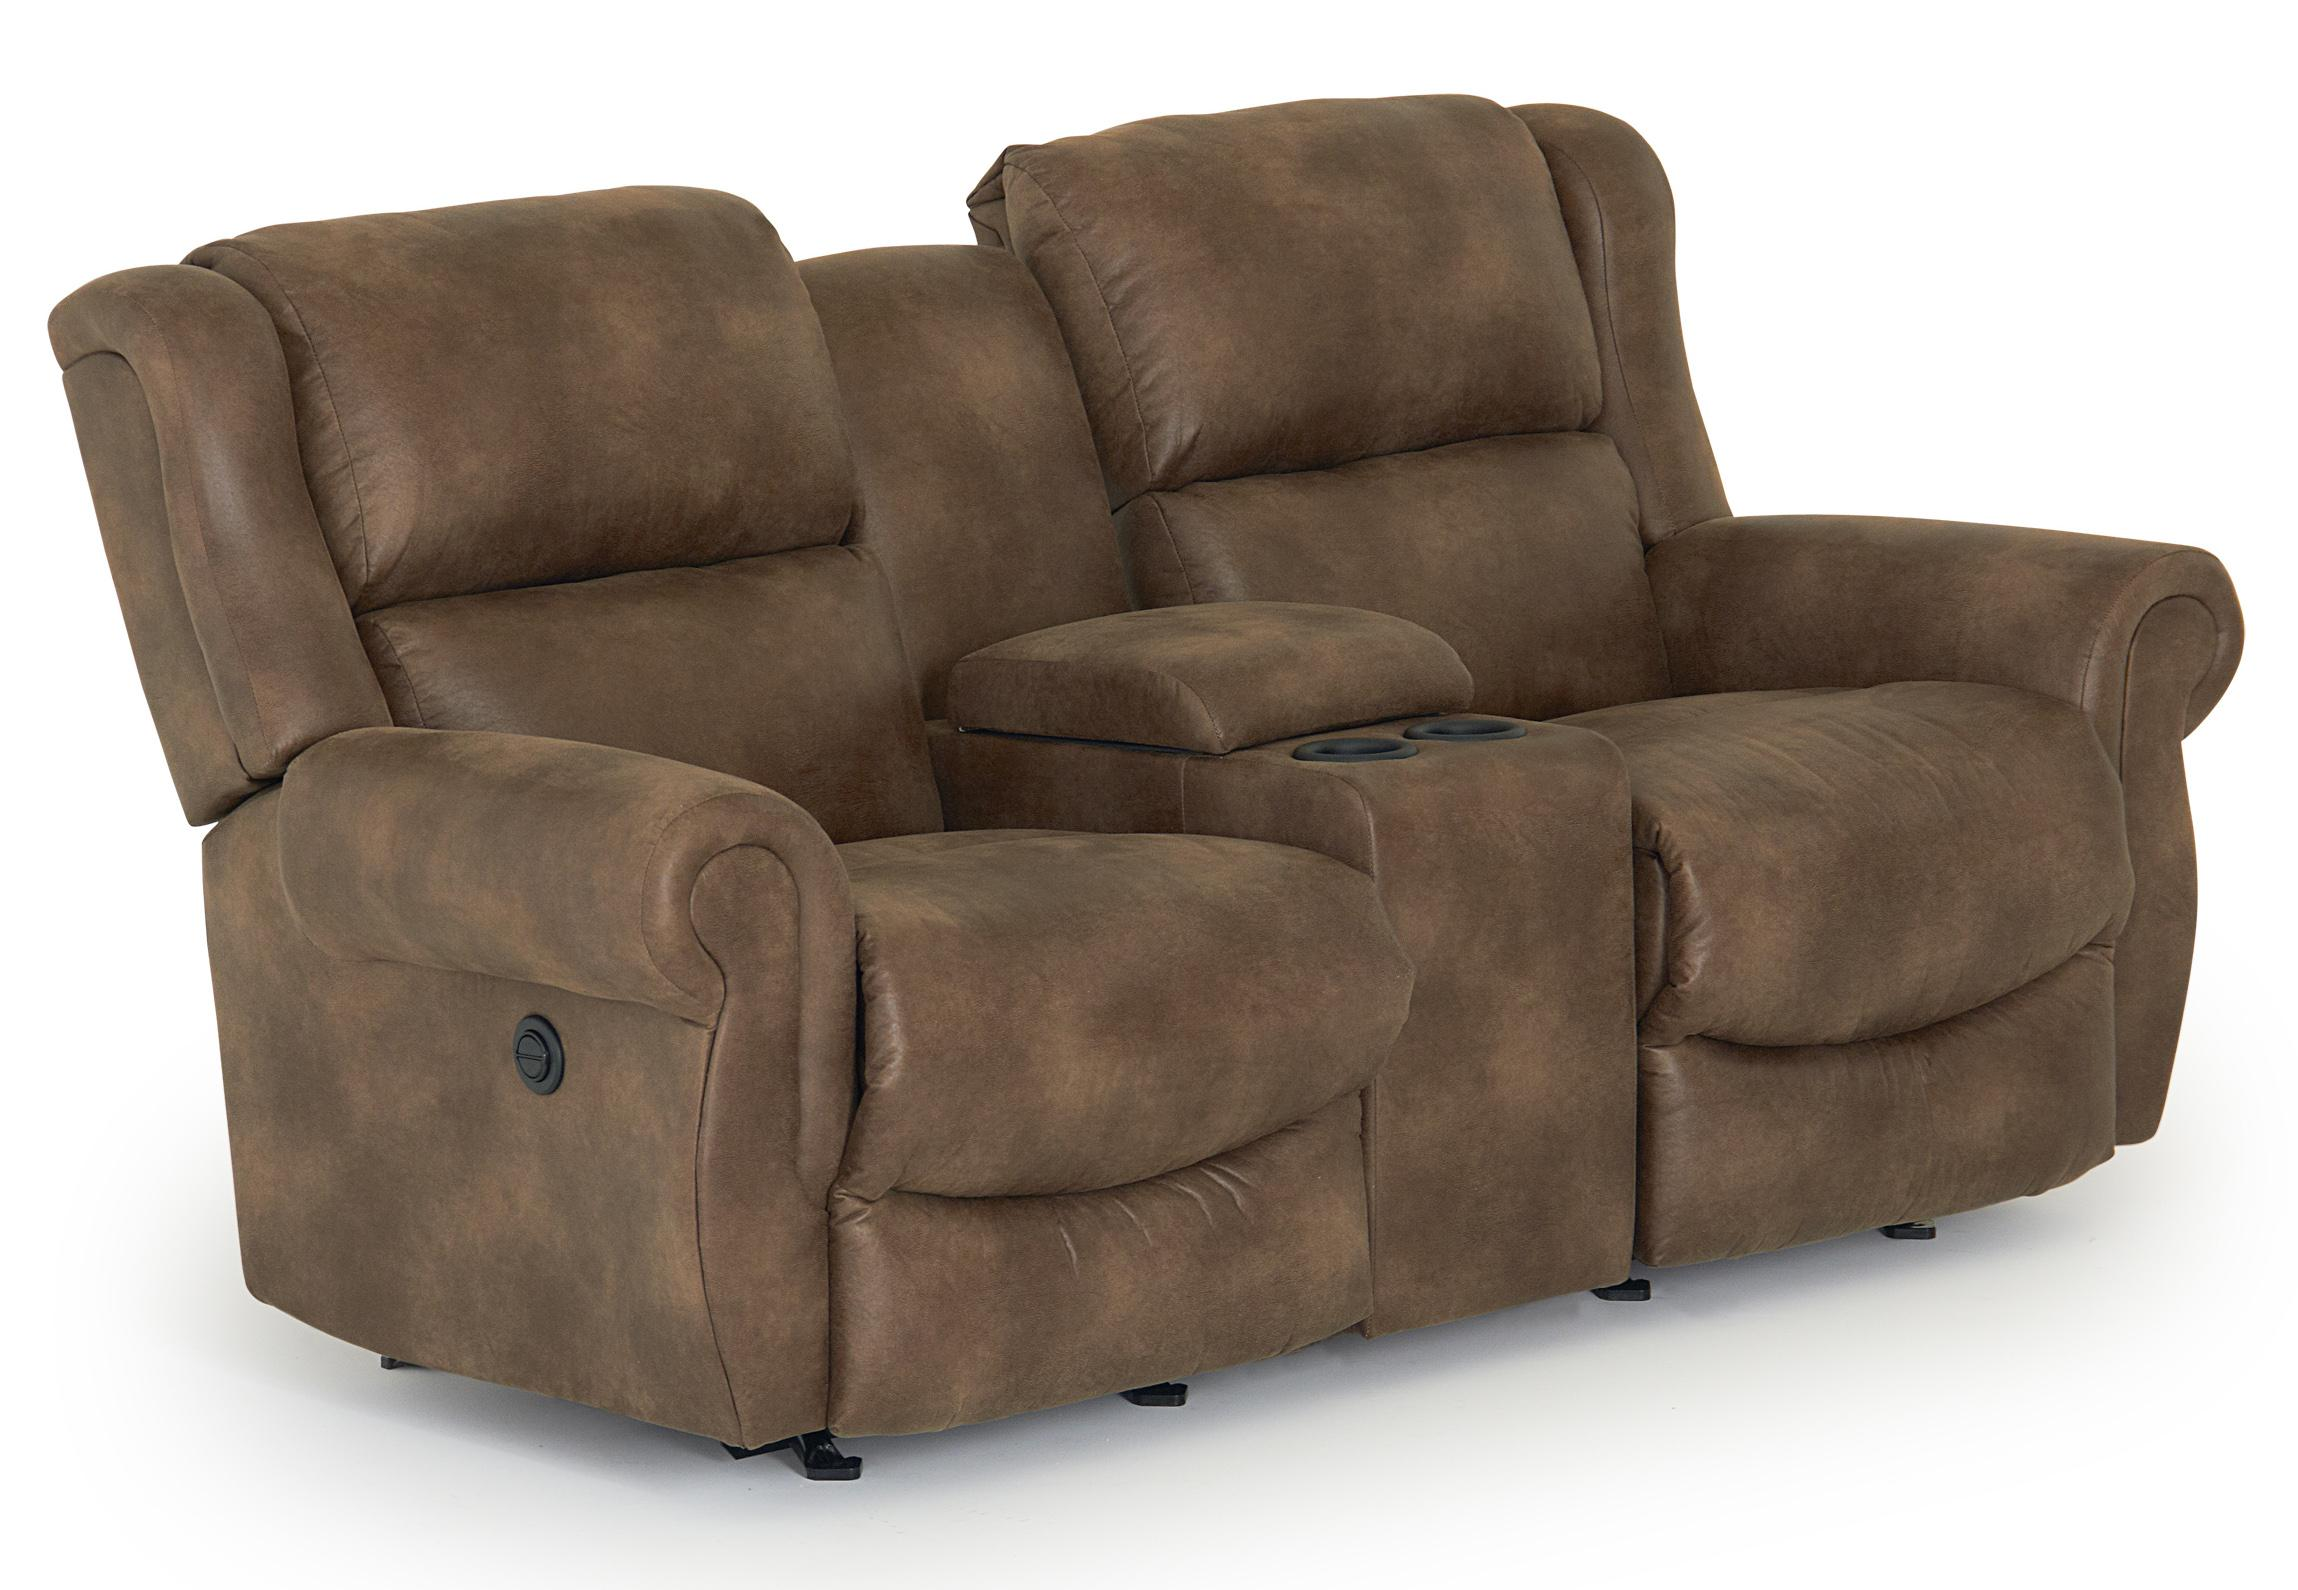 Best Home Furnishings Terrill Transitional Rocker Reclining Loveseat With Drink Console Rife 39 S